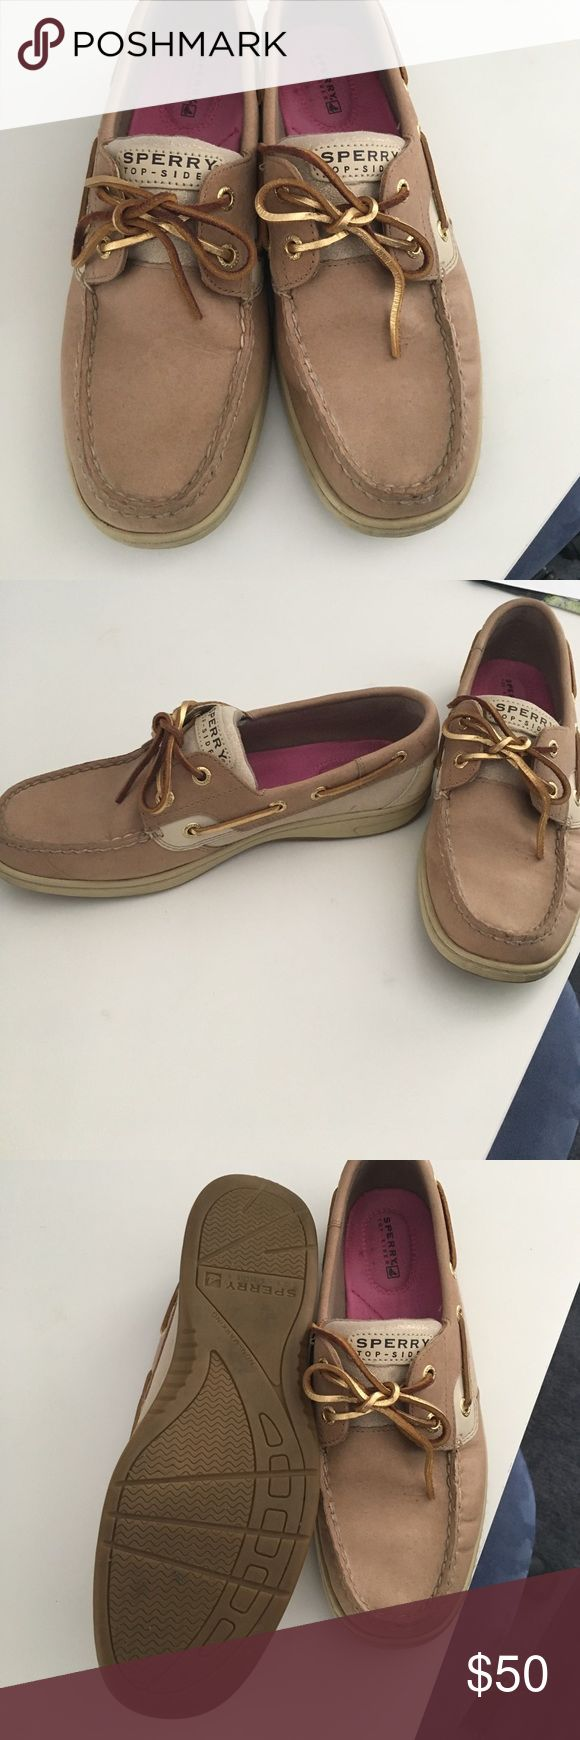 Sperry Topsider Boat Shoe Women's Brand new gold accented sperry topsider boat shoes Sperry Shoes Flats & Loafers